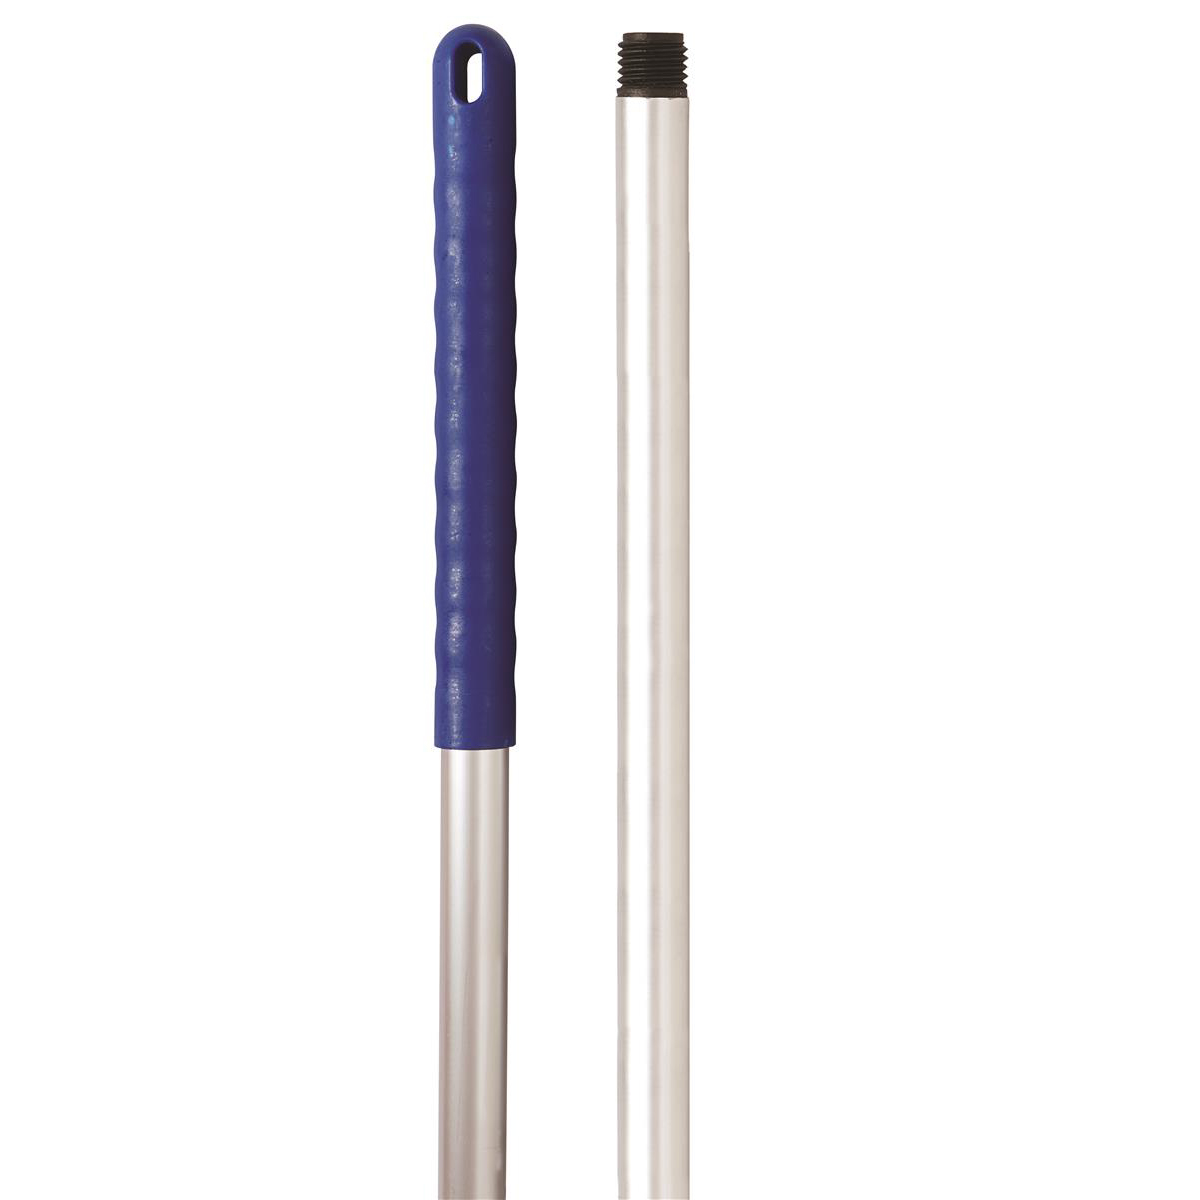 Robert Scott & Sons Abbey Hygiene Mop Handle Aluminium Colour-coded Screw 125cm Blue Ref AH49BL